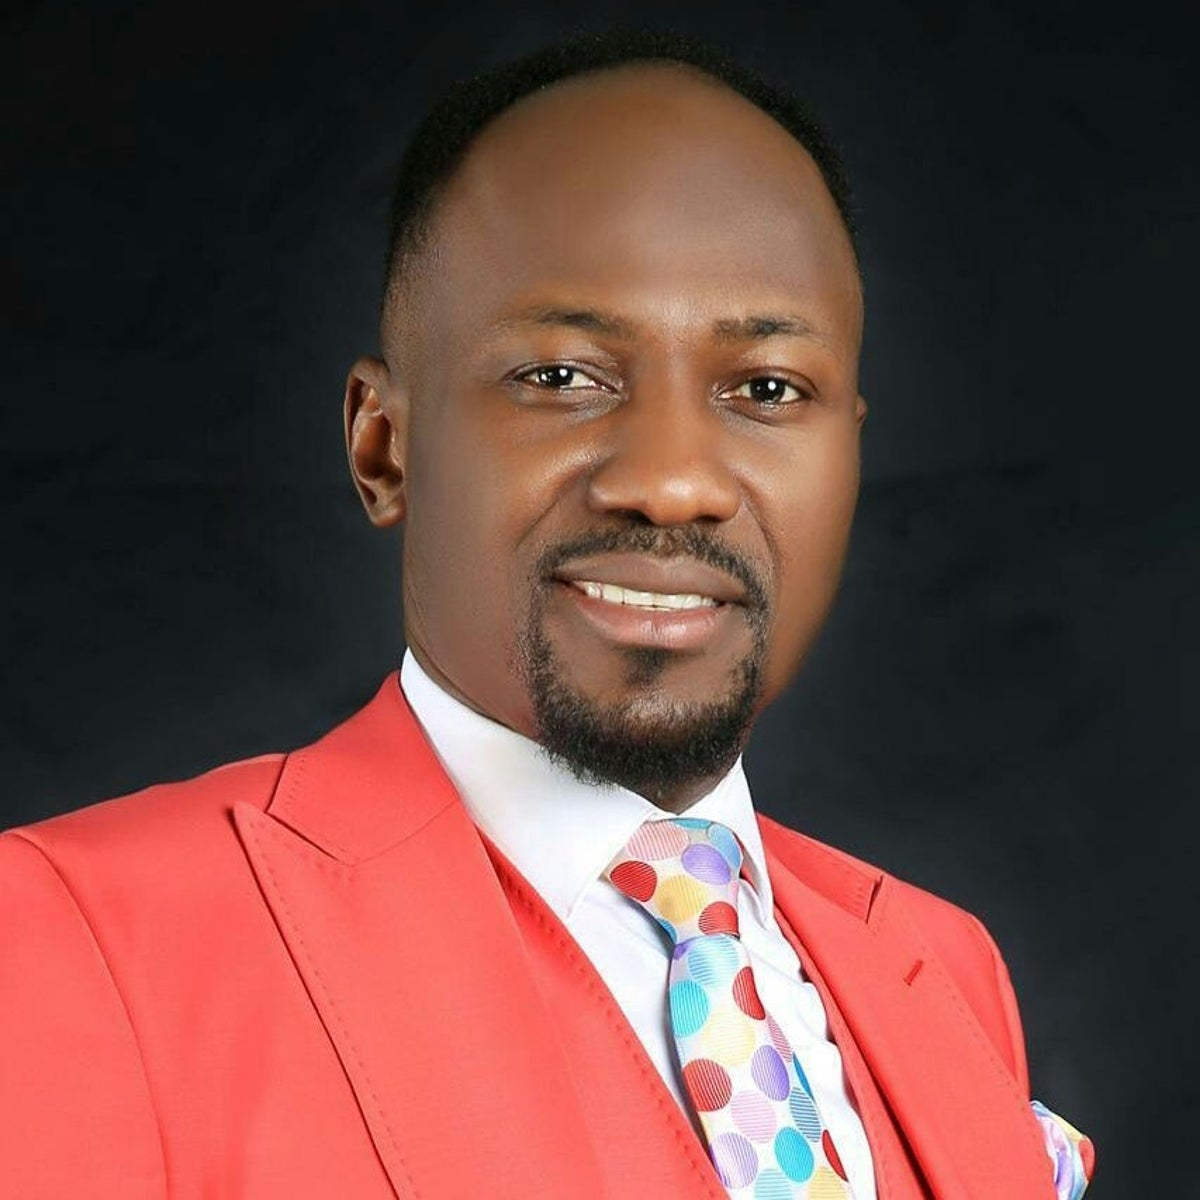 Apostle Suleman Breaks Silence On Having Sex With Actress For N500,000